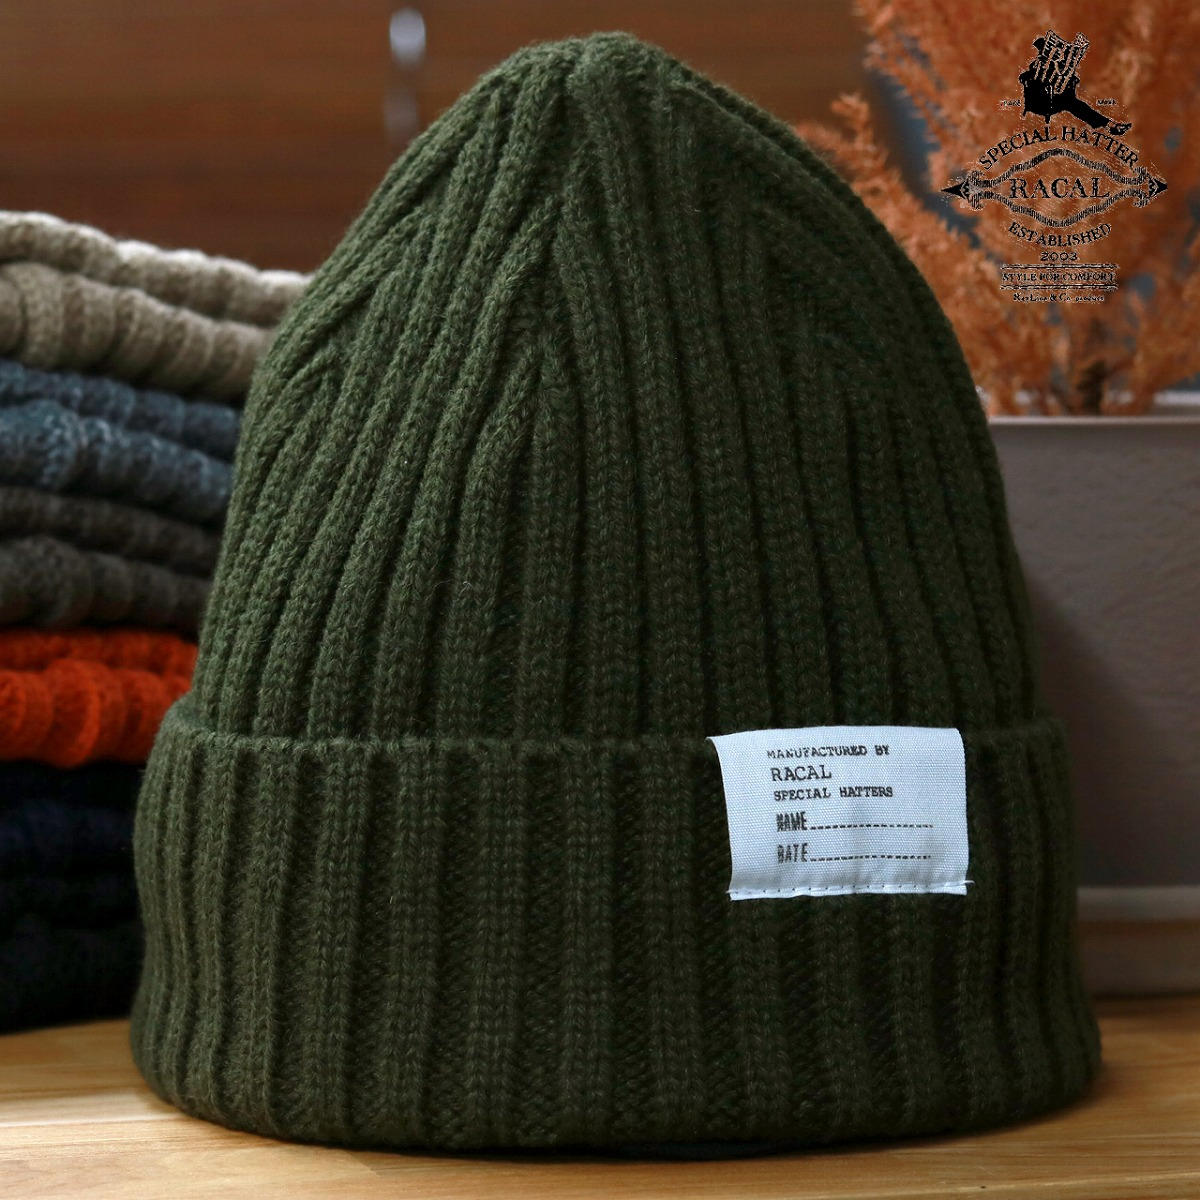 95c3b1d59a0 Casual men coordinates   dark olive  beanie cap  Christmas gift present  with the レディース ...